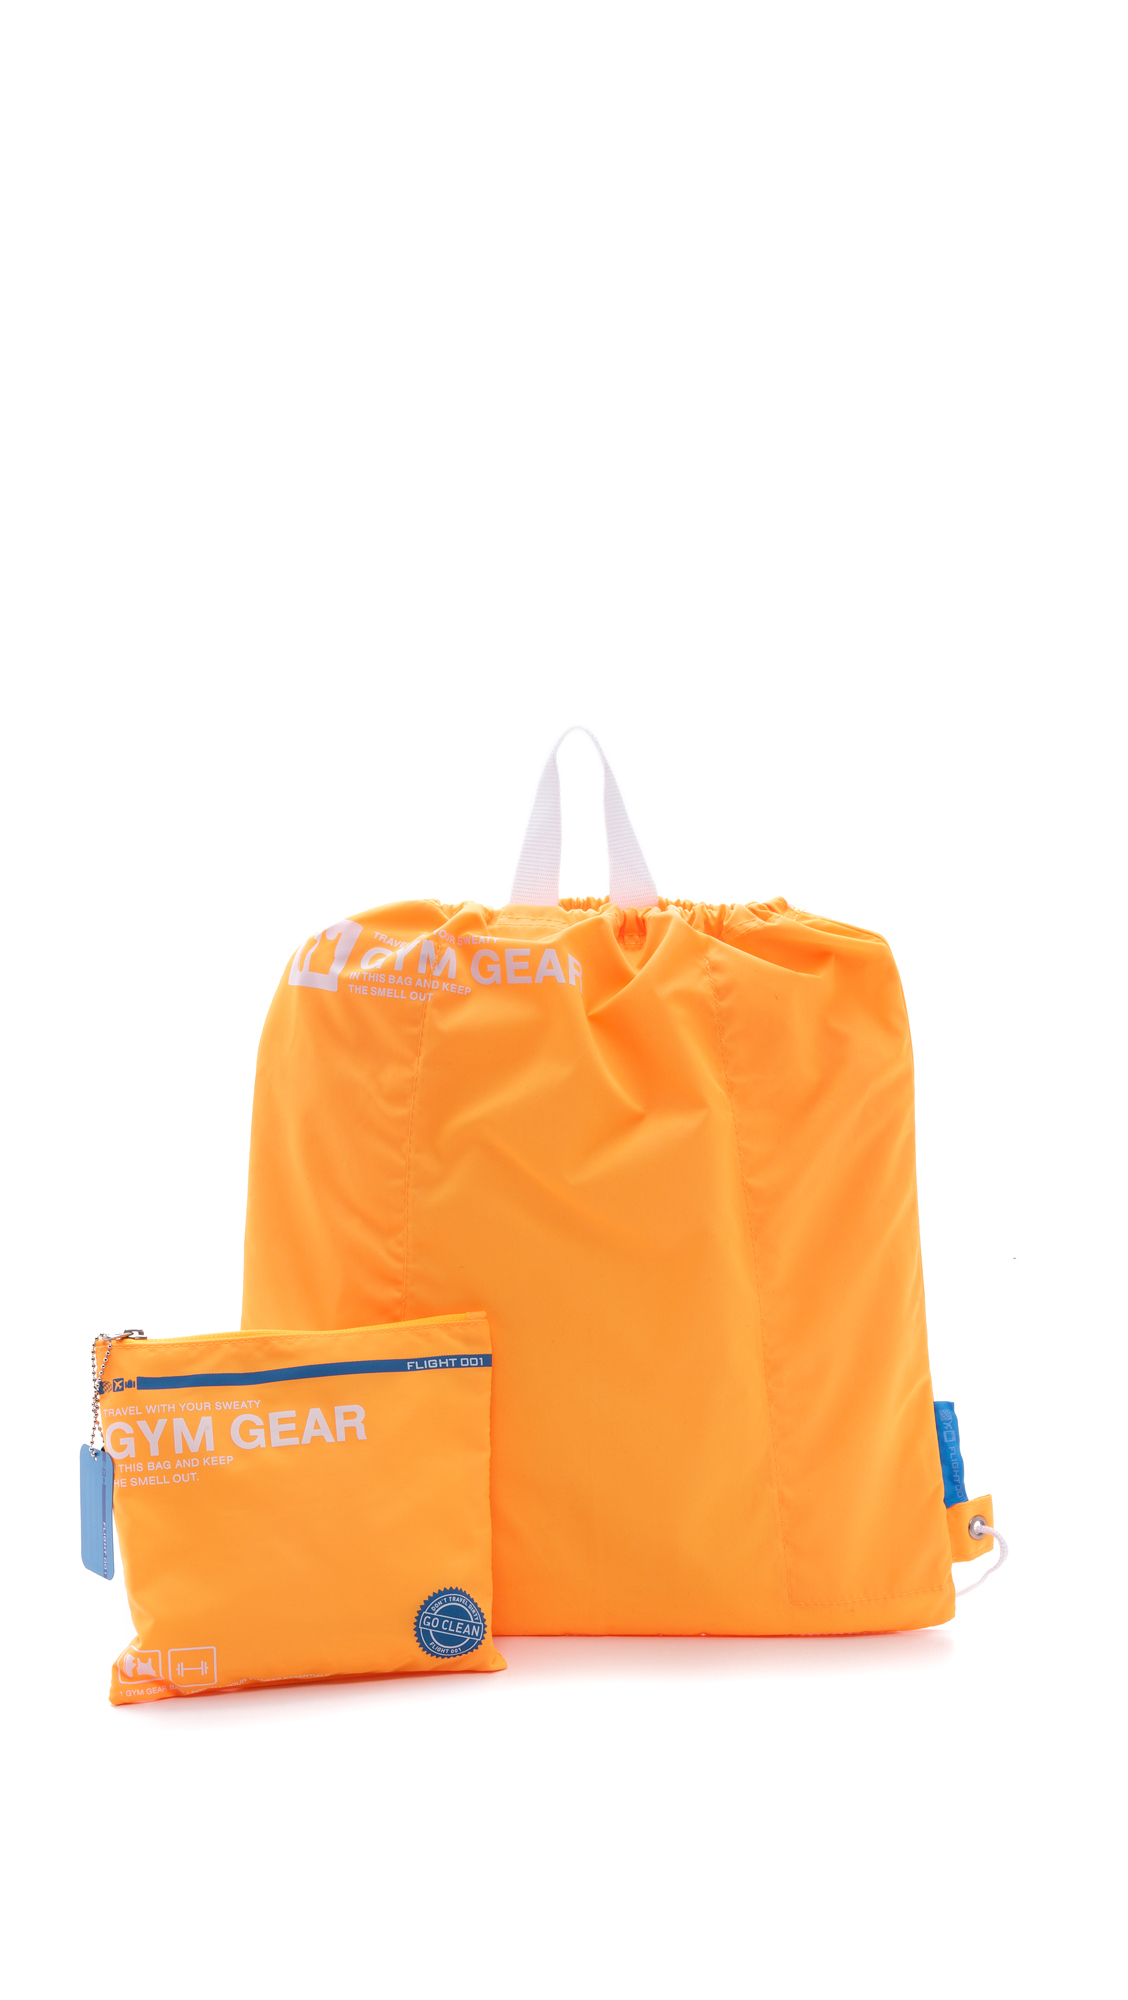 Designed to stash in a suitcase, this packable nylon bag is the perfect size to protect gym gear. Drawstring closure. Zip carrying pouch included. Fabric: Technical weave. Imported, China. COLOR: Neon Orange is brighter than it